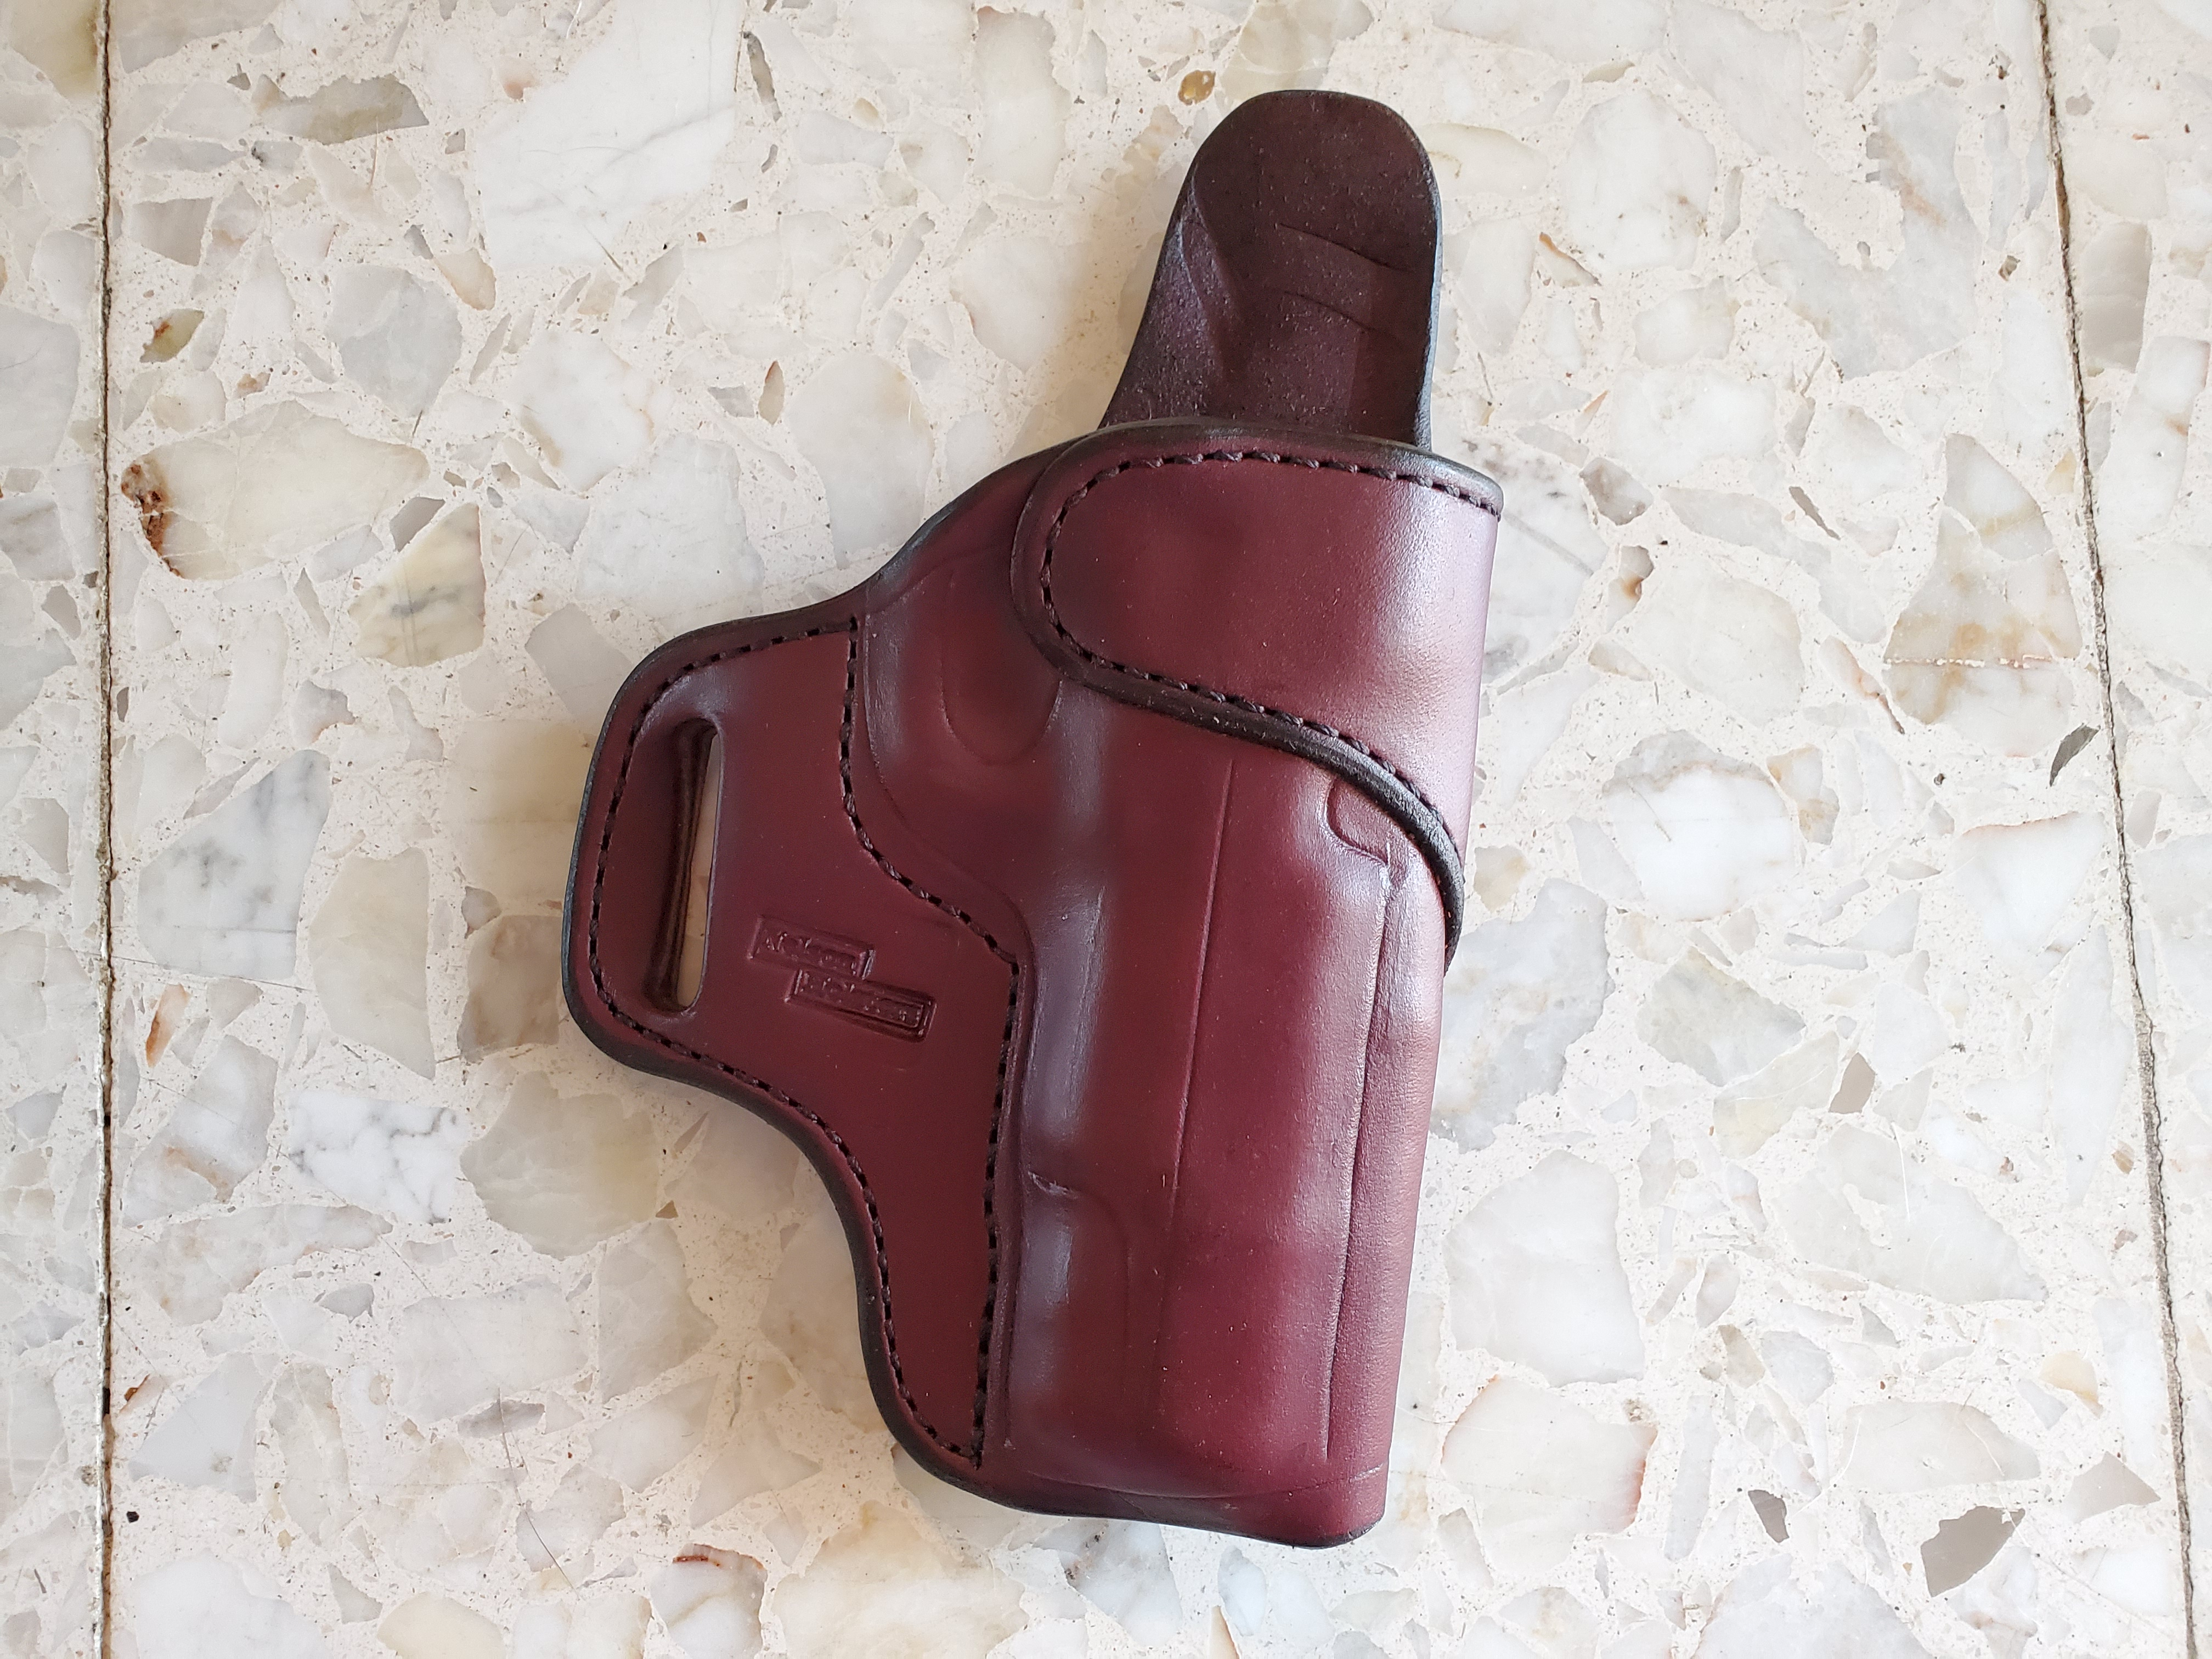 Selling New Nelson Holsters- 10% off Retail and No Wait-20190508_170810.jpg